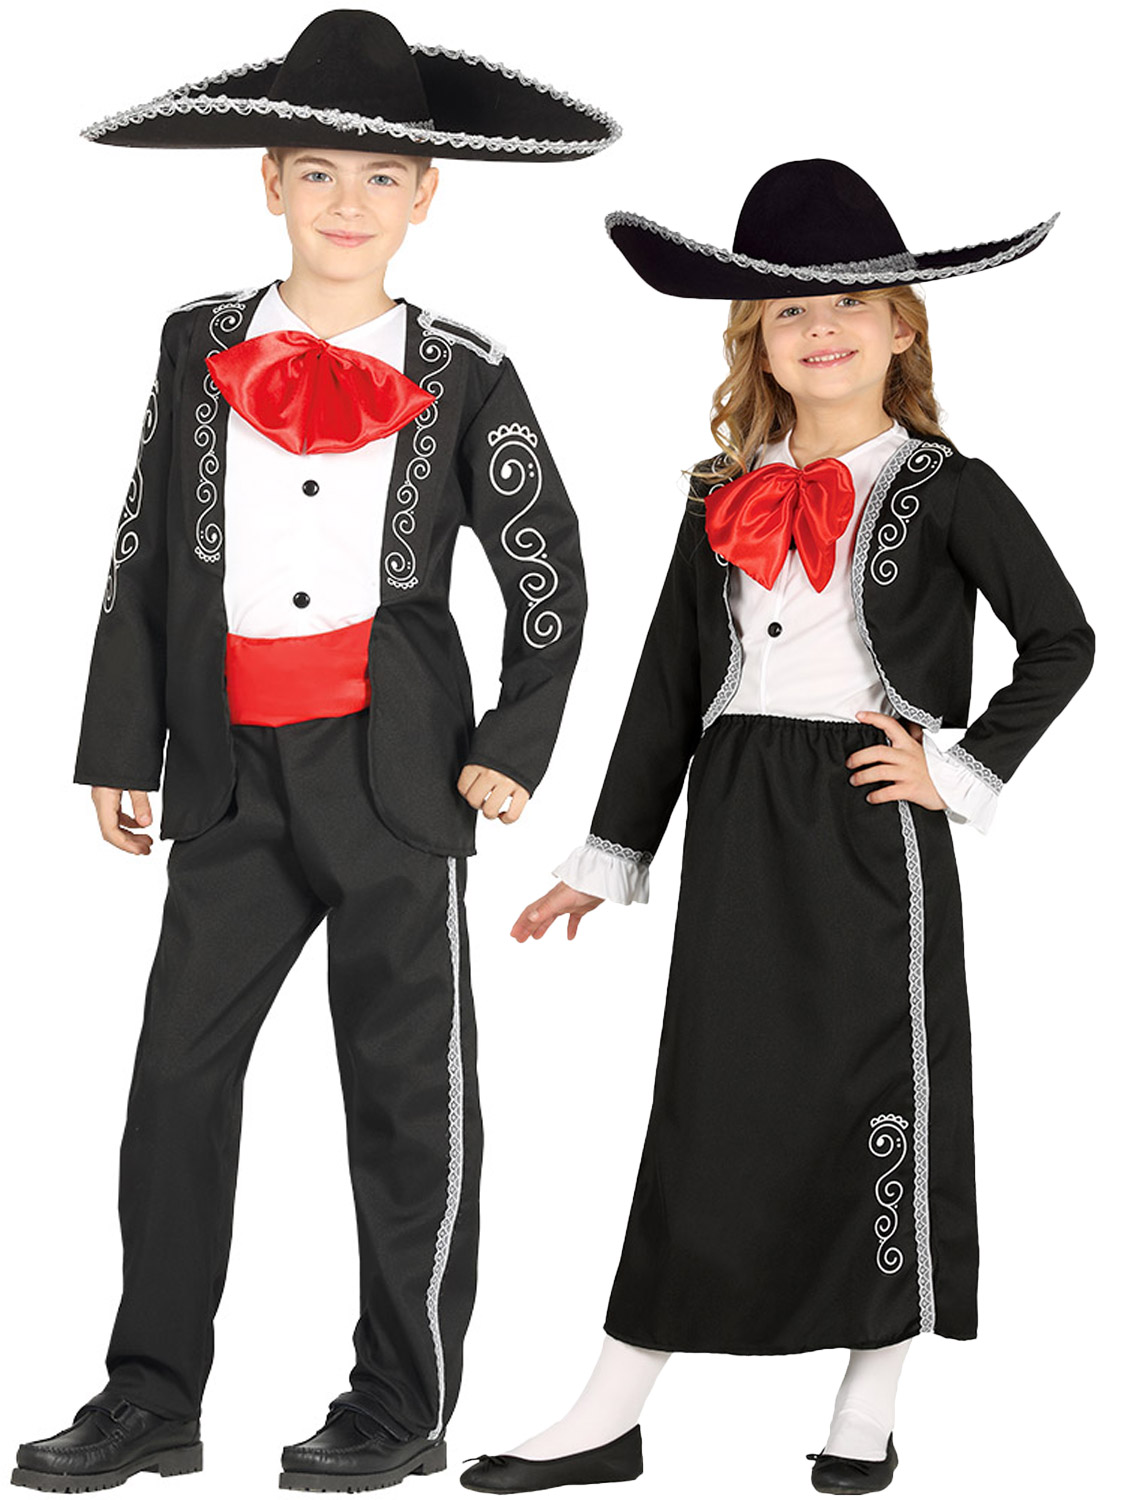 Details about Boys Girls Mexican Mariachi Costume Kids Fancy Dress Spanish  Musician Outfit